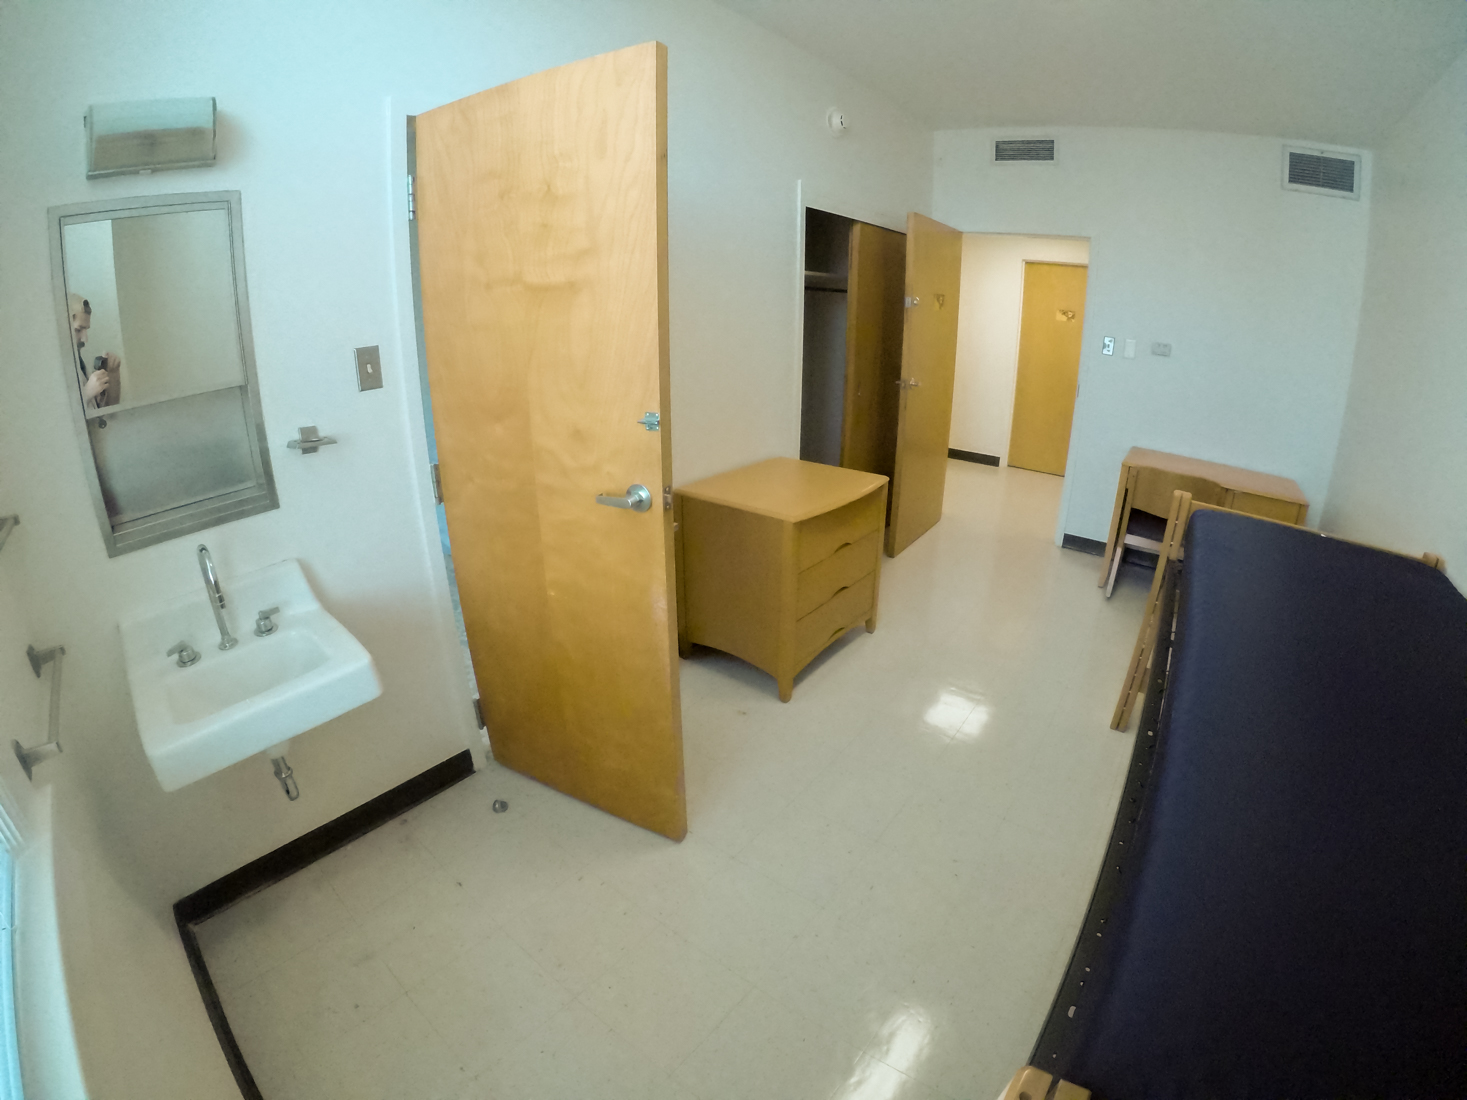 A+typical+bedroom+in+Founders+Hall+includes+a+bed%2C+vanity+sink%2C+dresser-drawers%2C+closet%2C+and+desk.++Rooms+such+as+this+are+small+in+size+but+only+need+to+accommodate+one+student+unlike+most+rooms+in+Loyola%27s+residence+halls.+Photo+credit%3A+Jacob+Meyer